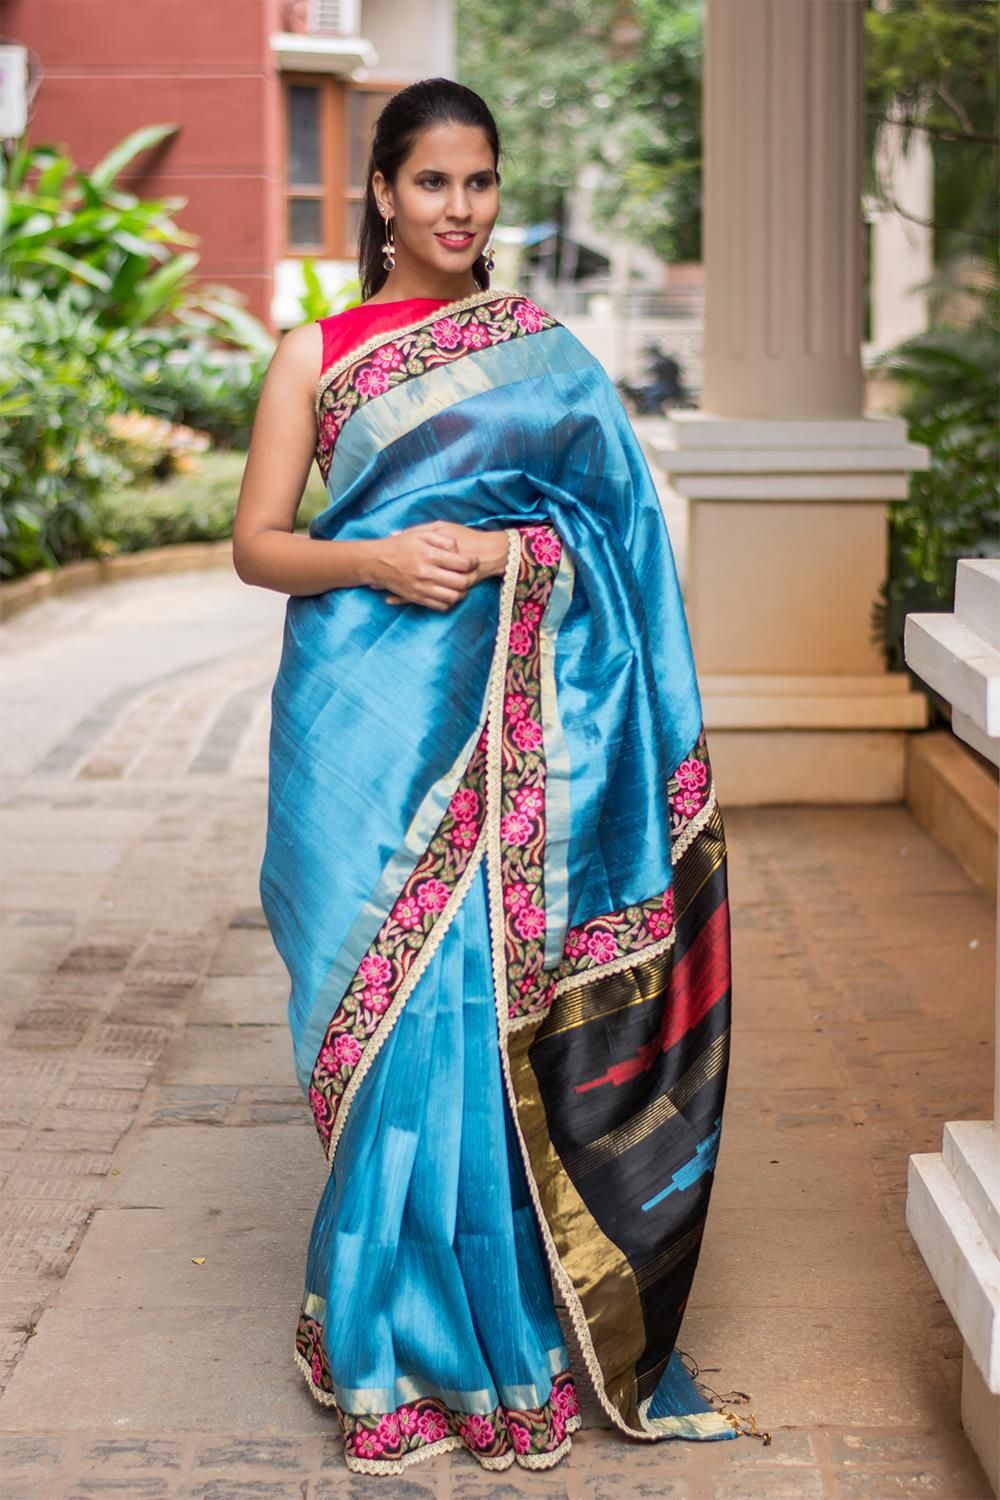 191af1cd204e34 Copper sulphate blue raw silk saree with rose threadwork border #saree  #roses #houseofblouse